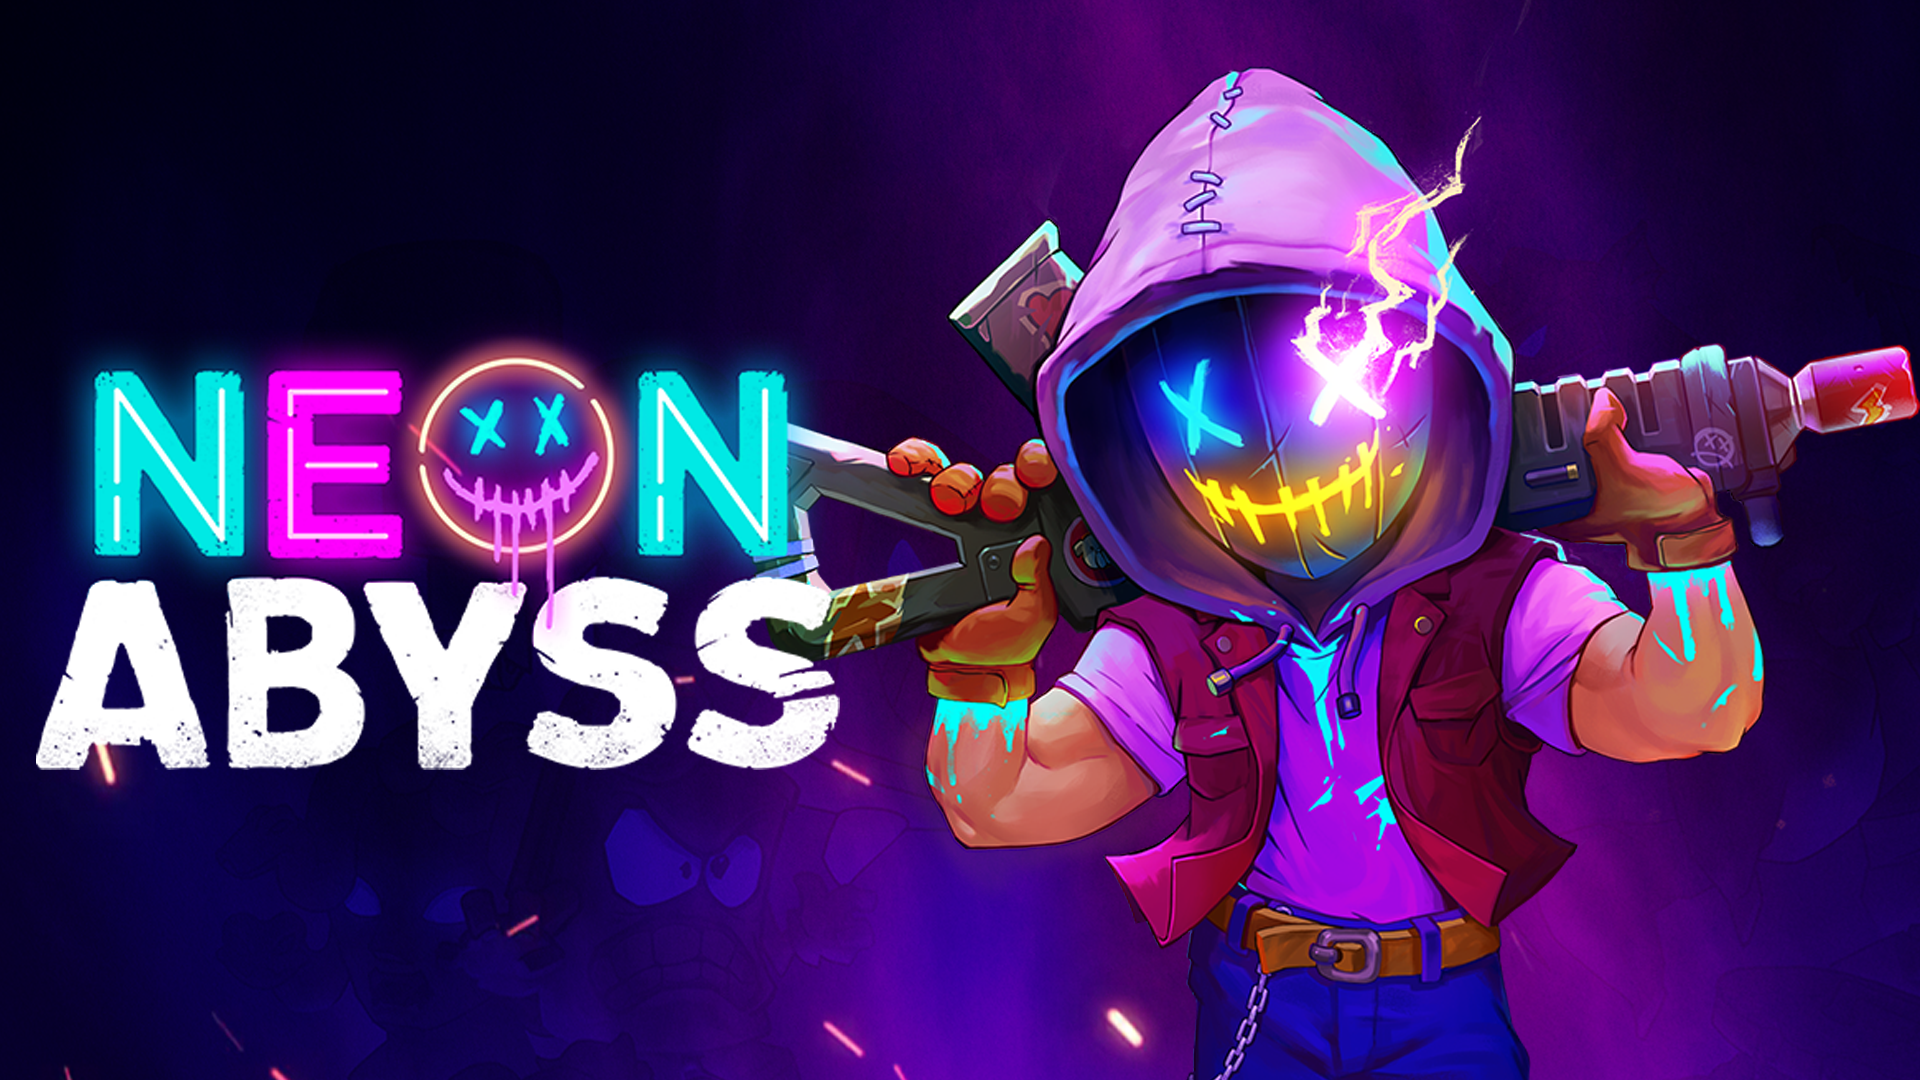 Neon Abyss Steam Demo Live Now!